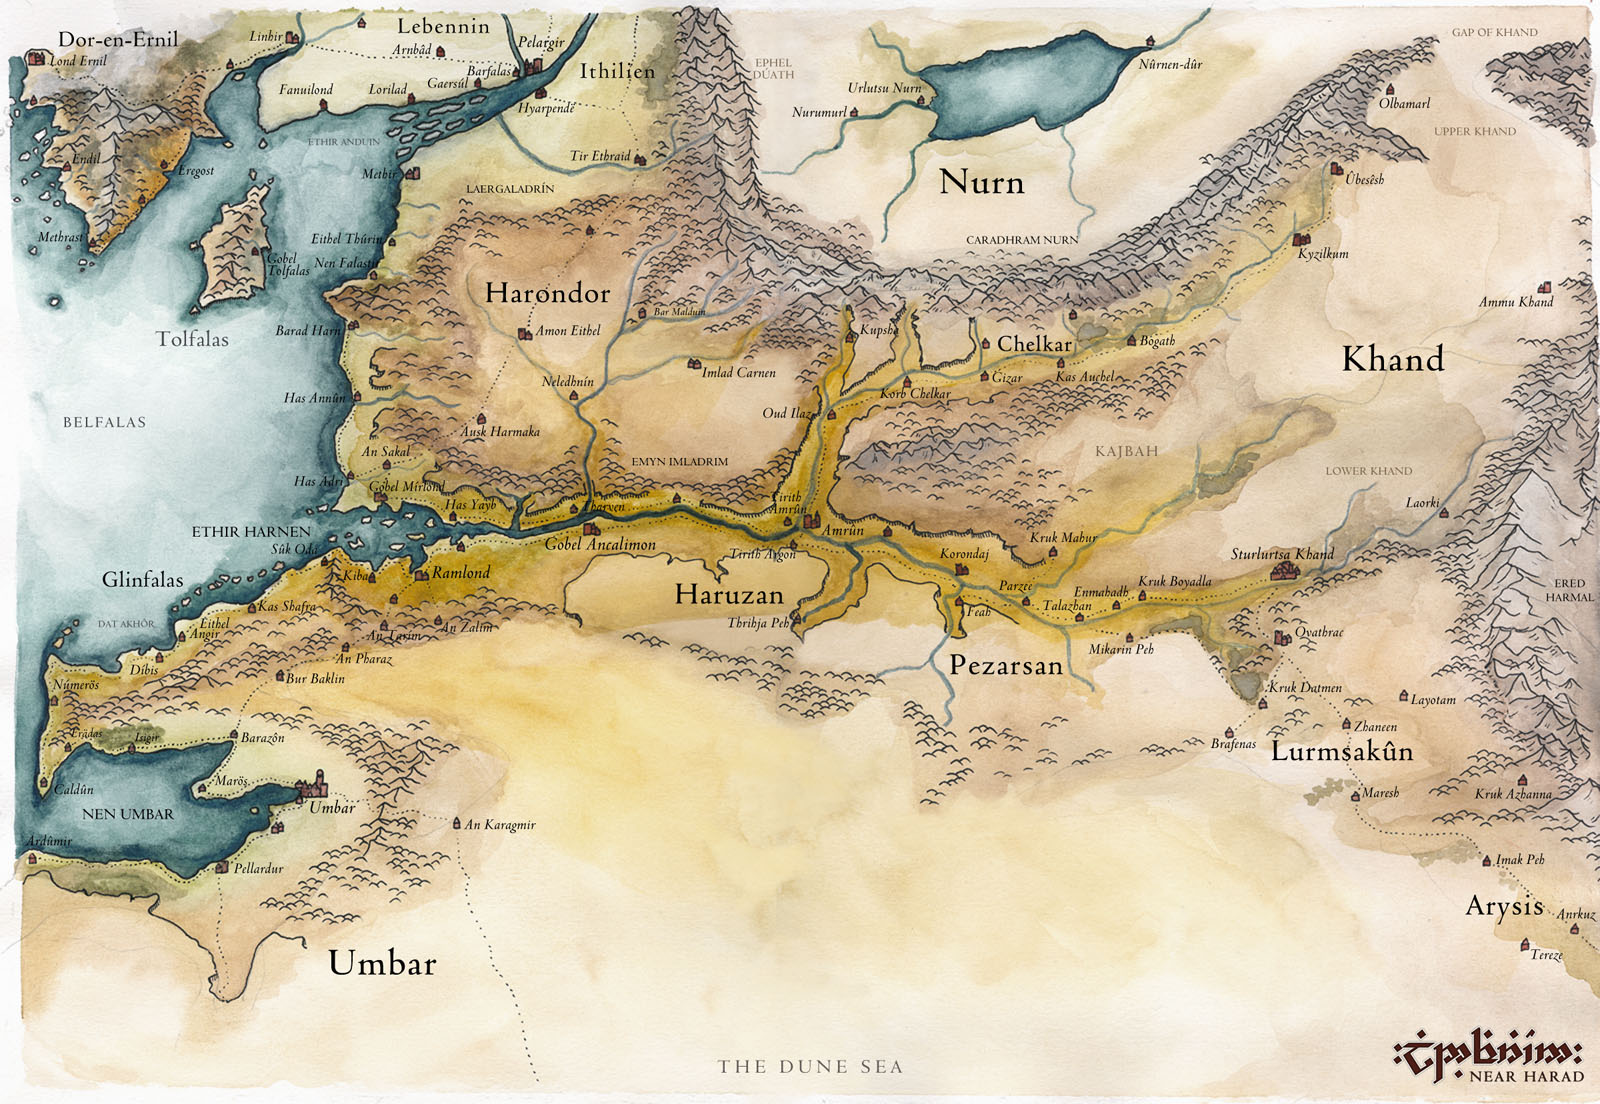 Lotr modifying middle earth page 2 httplindefirionmapsharnendorg gumiabroncs Gallery